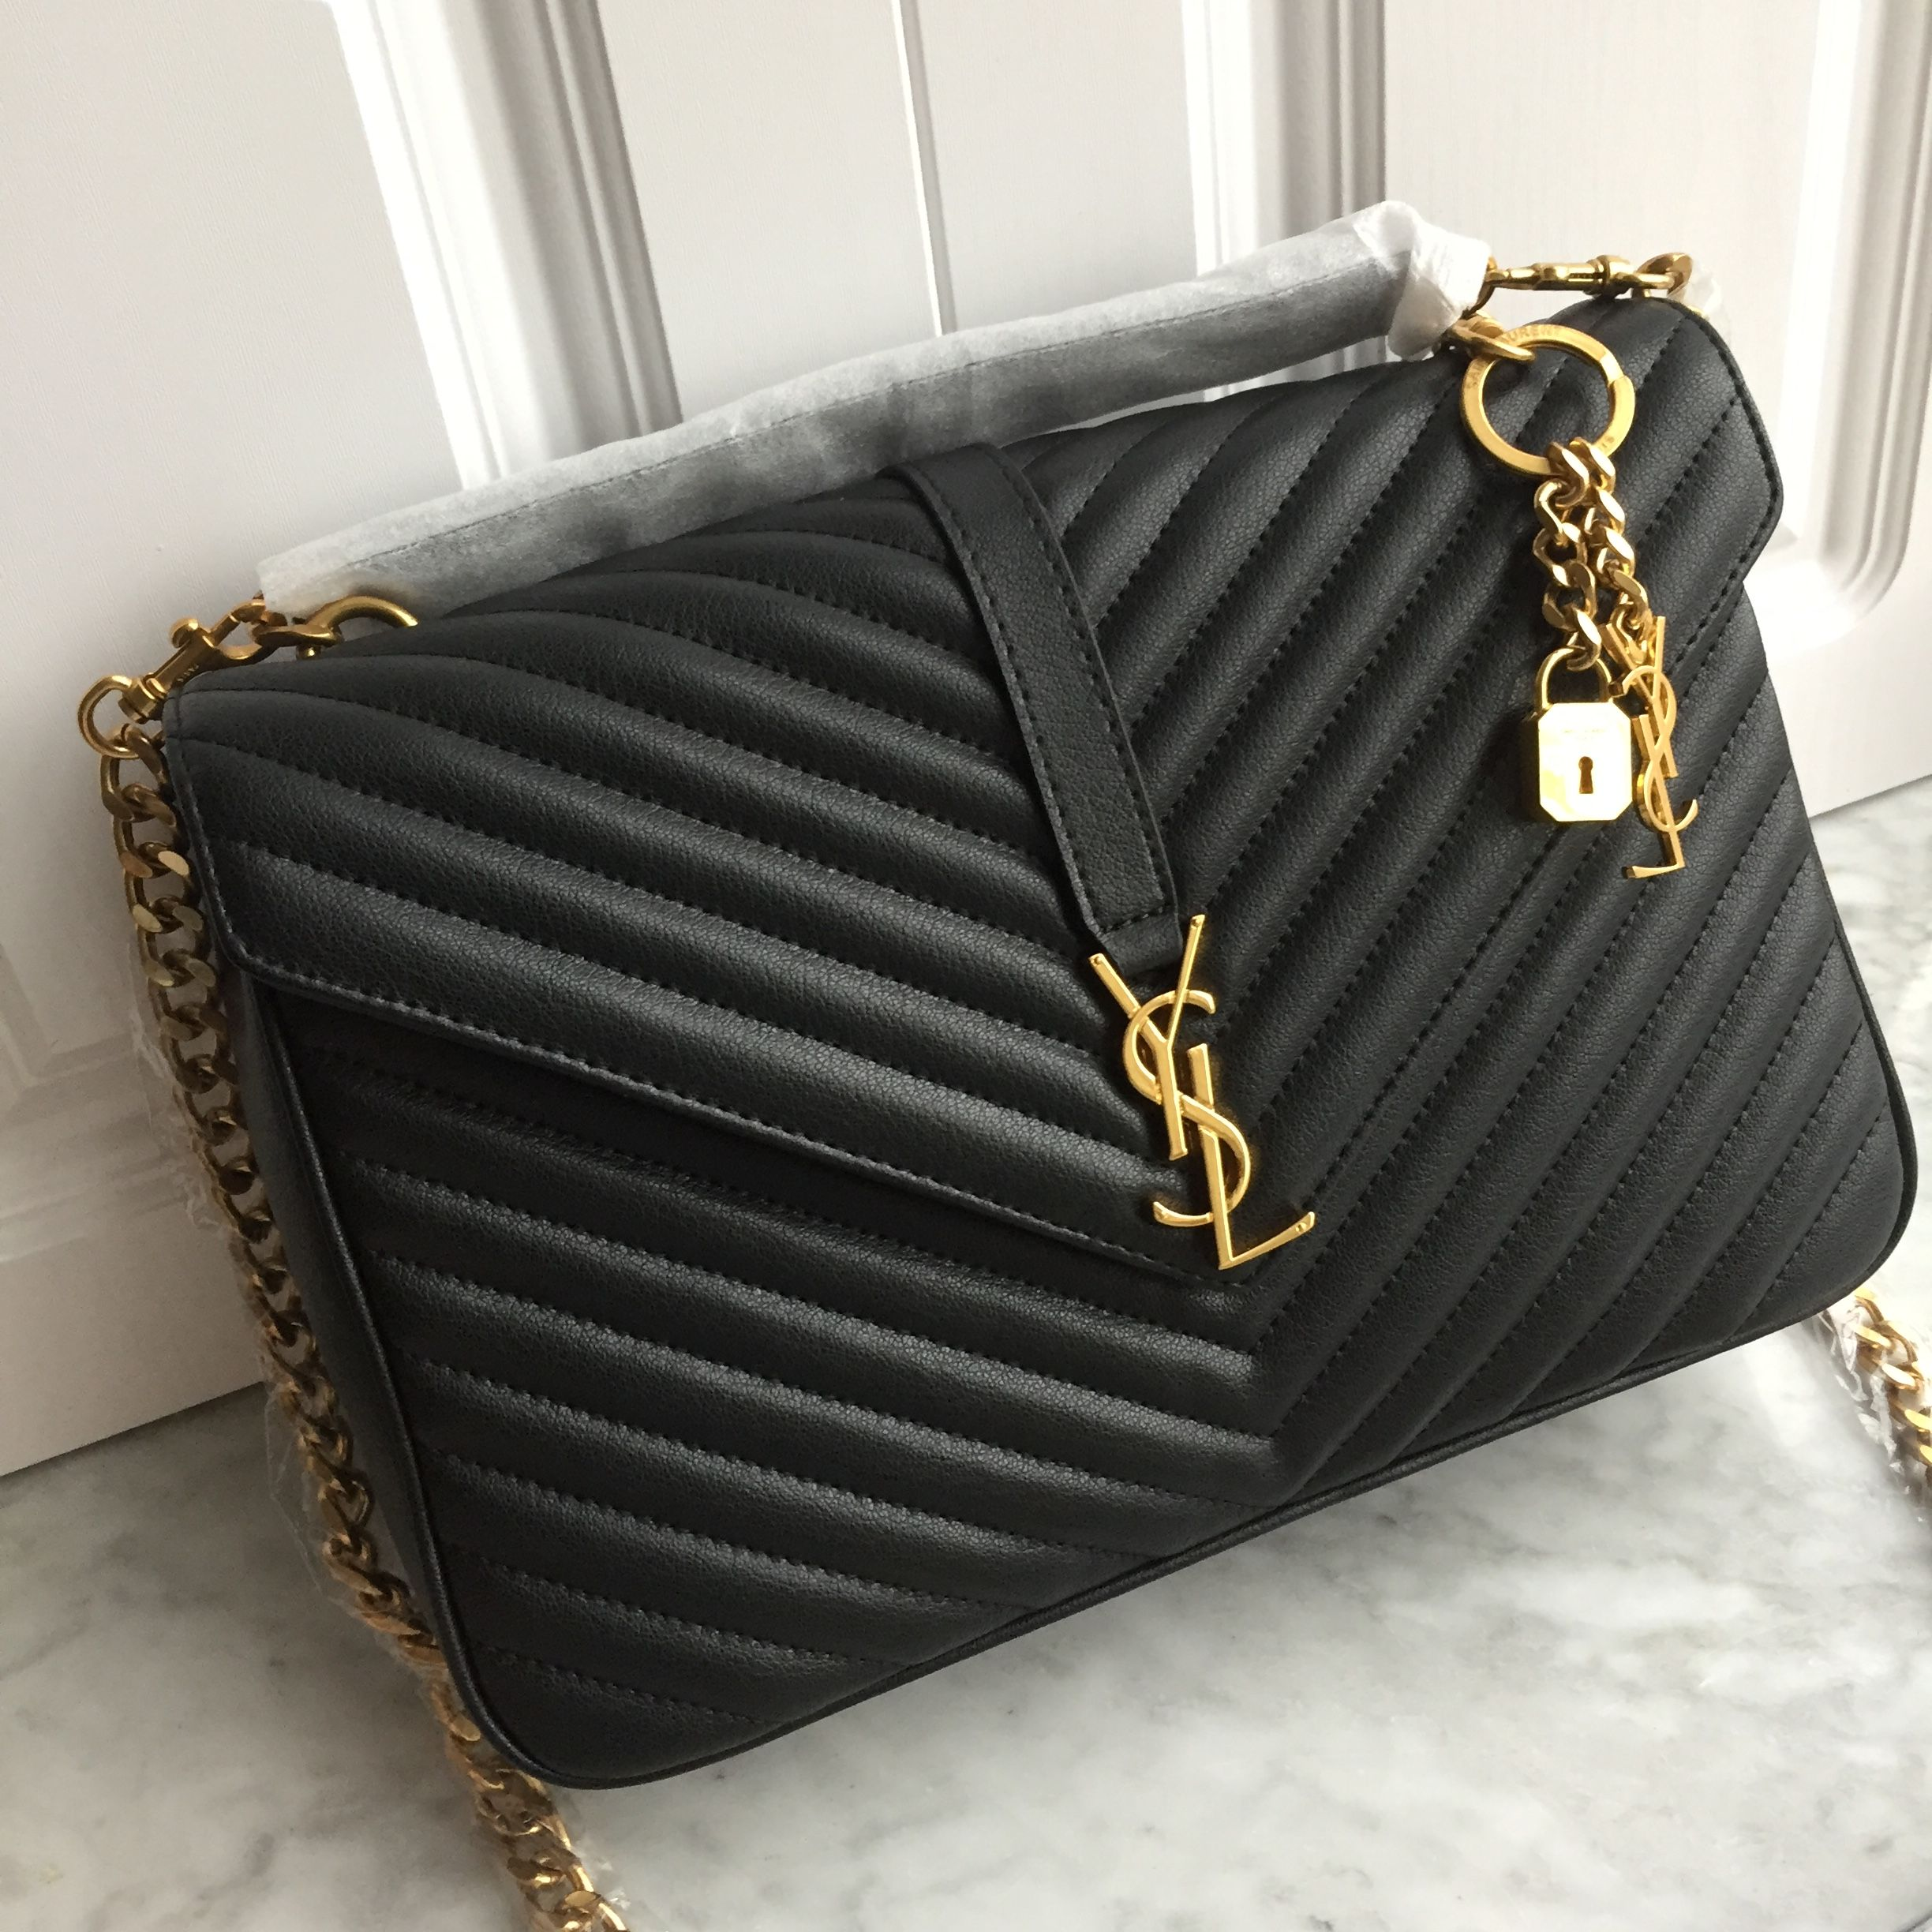 GLAMBARBIE 👑 👑👑 Ysl Saint Laurent slp college chain flap bag black large  size 8db24a0f73ca2